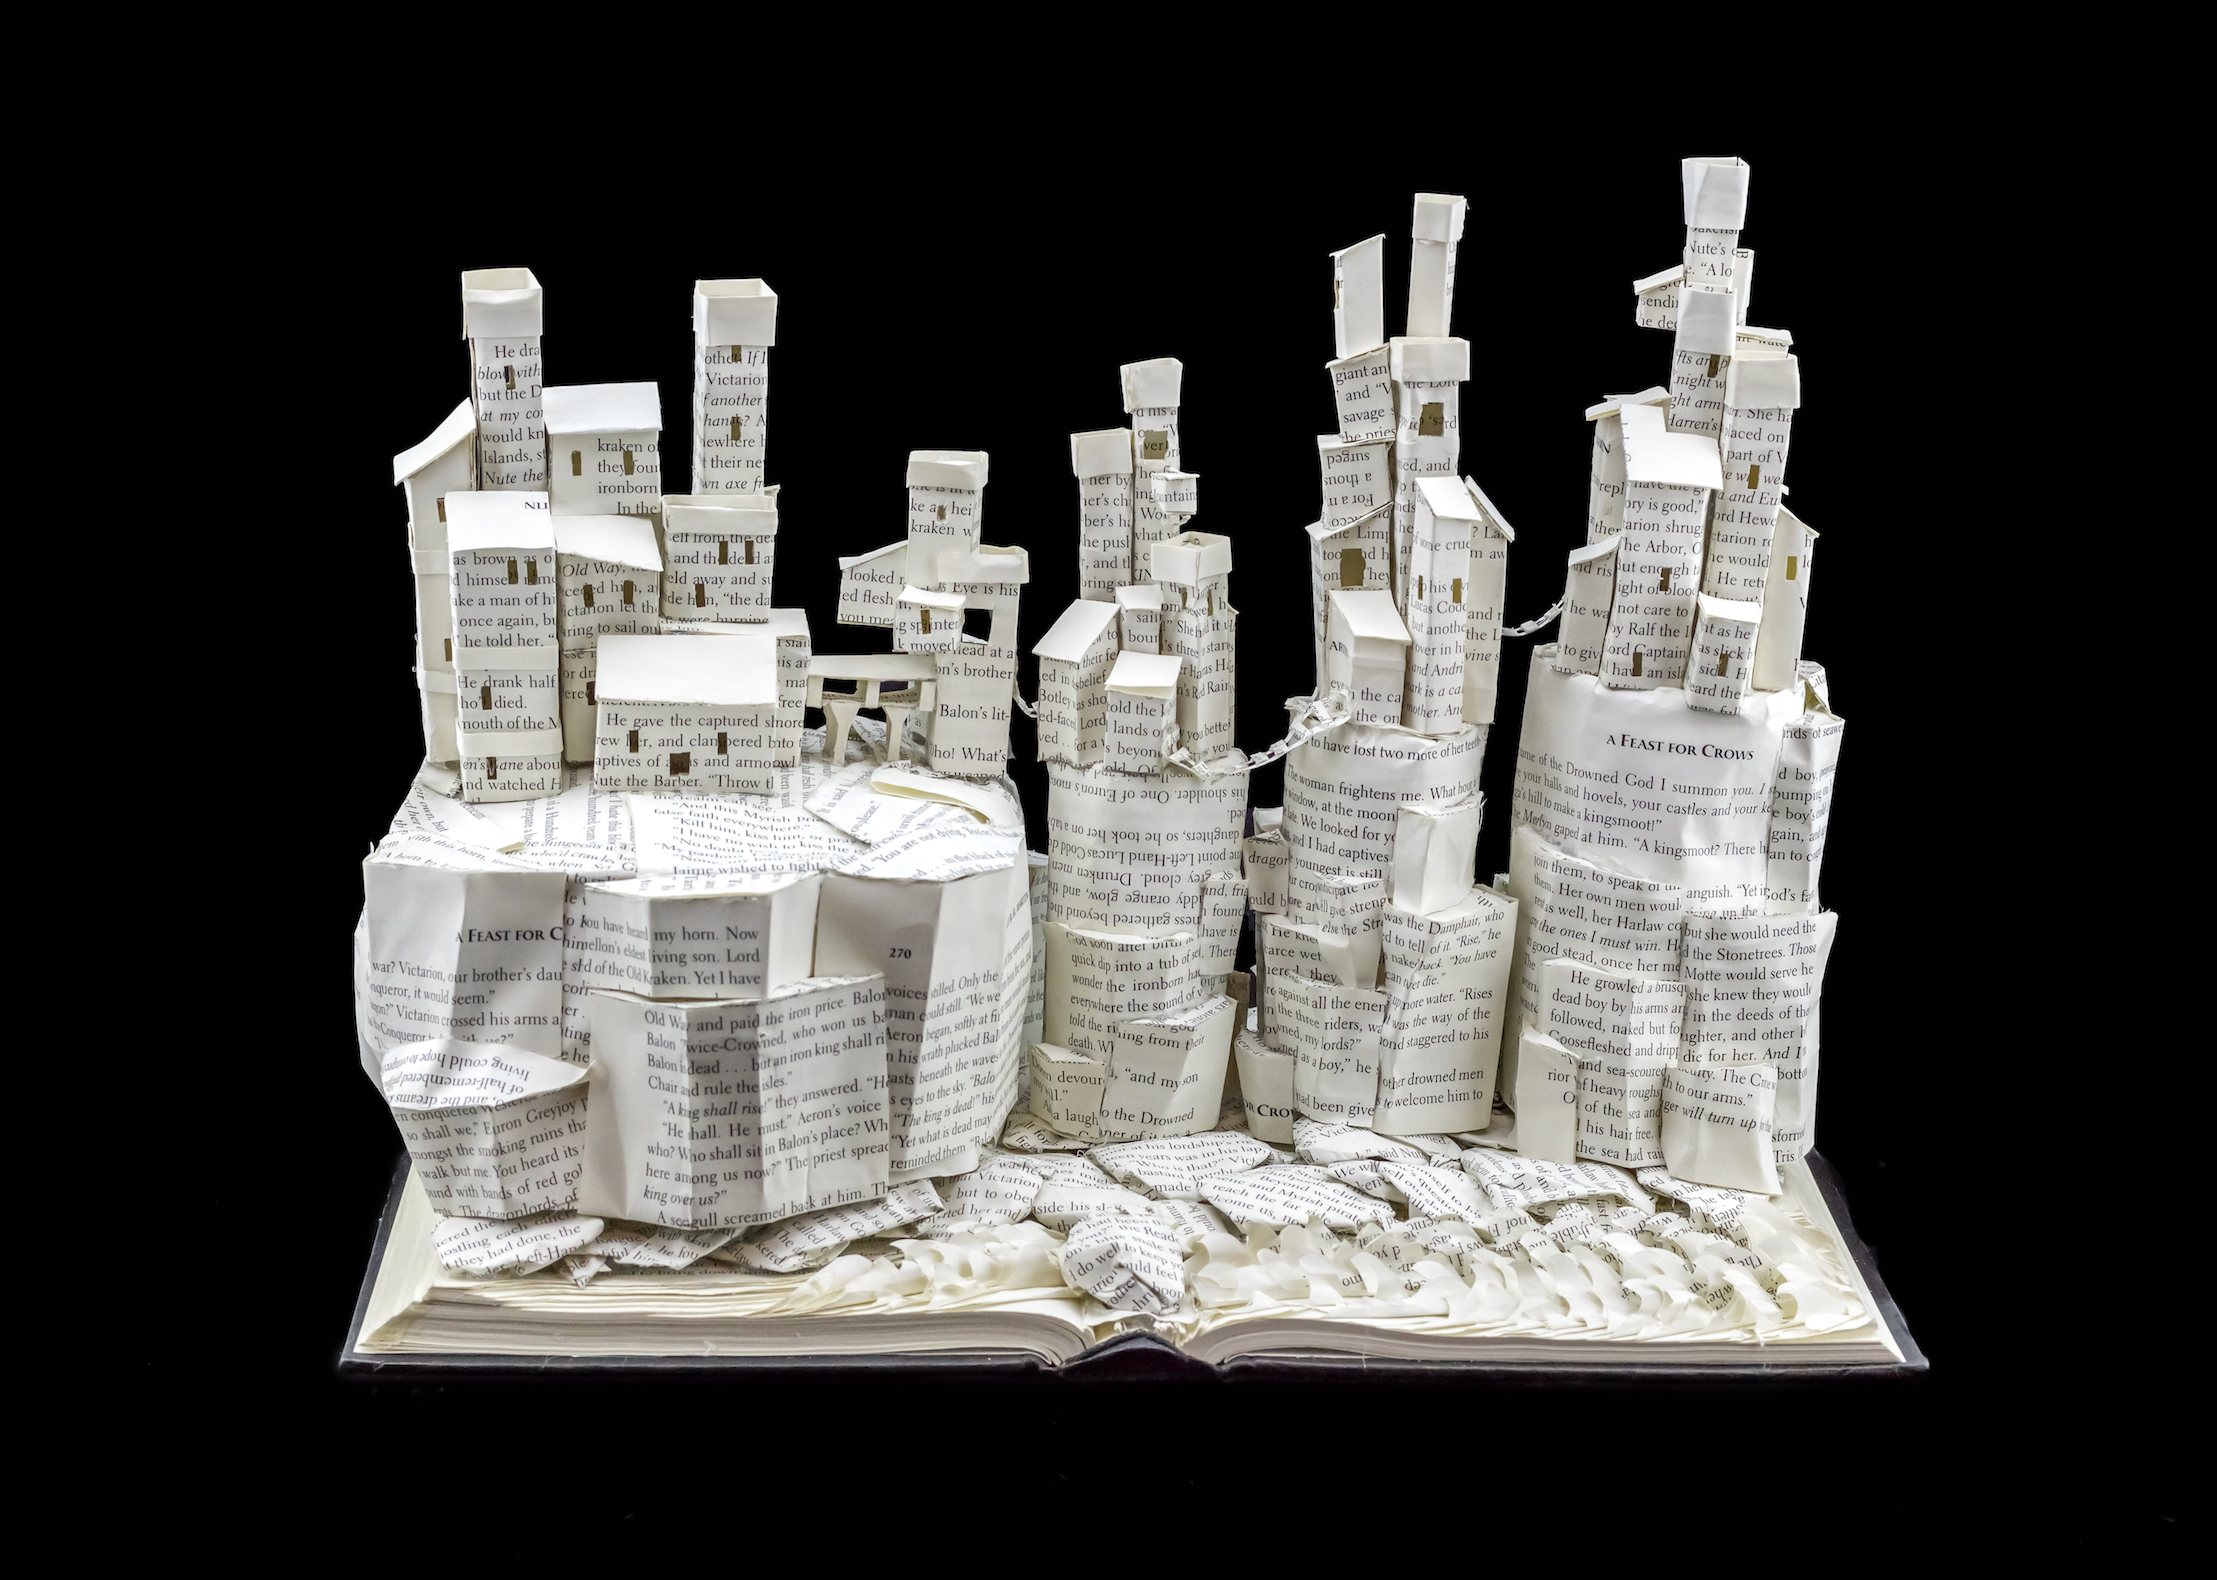 Game of Thrones The Wall and Castle Black Book Sculpture